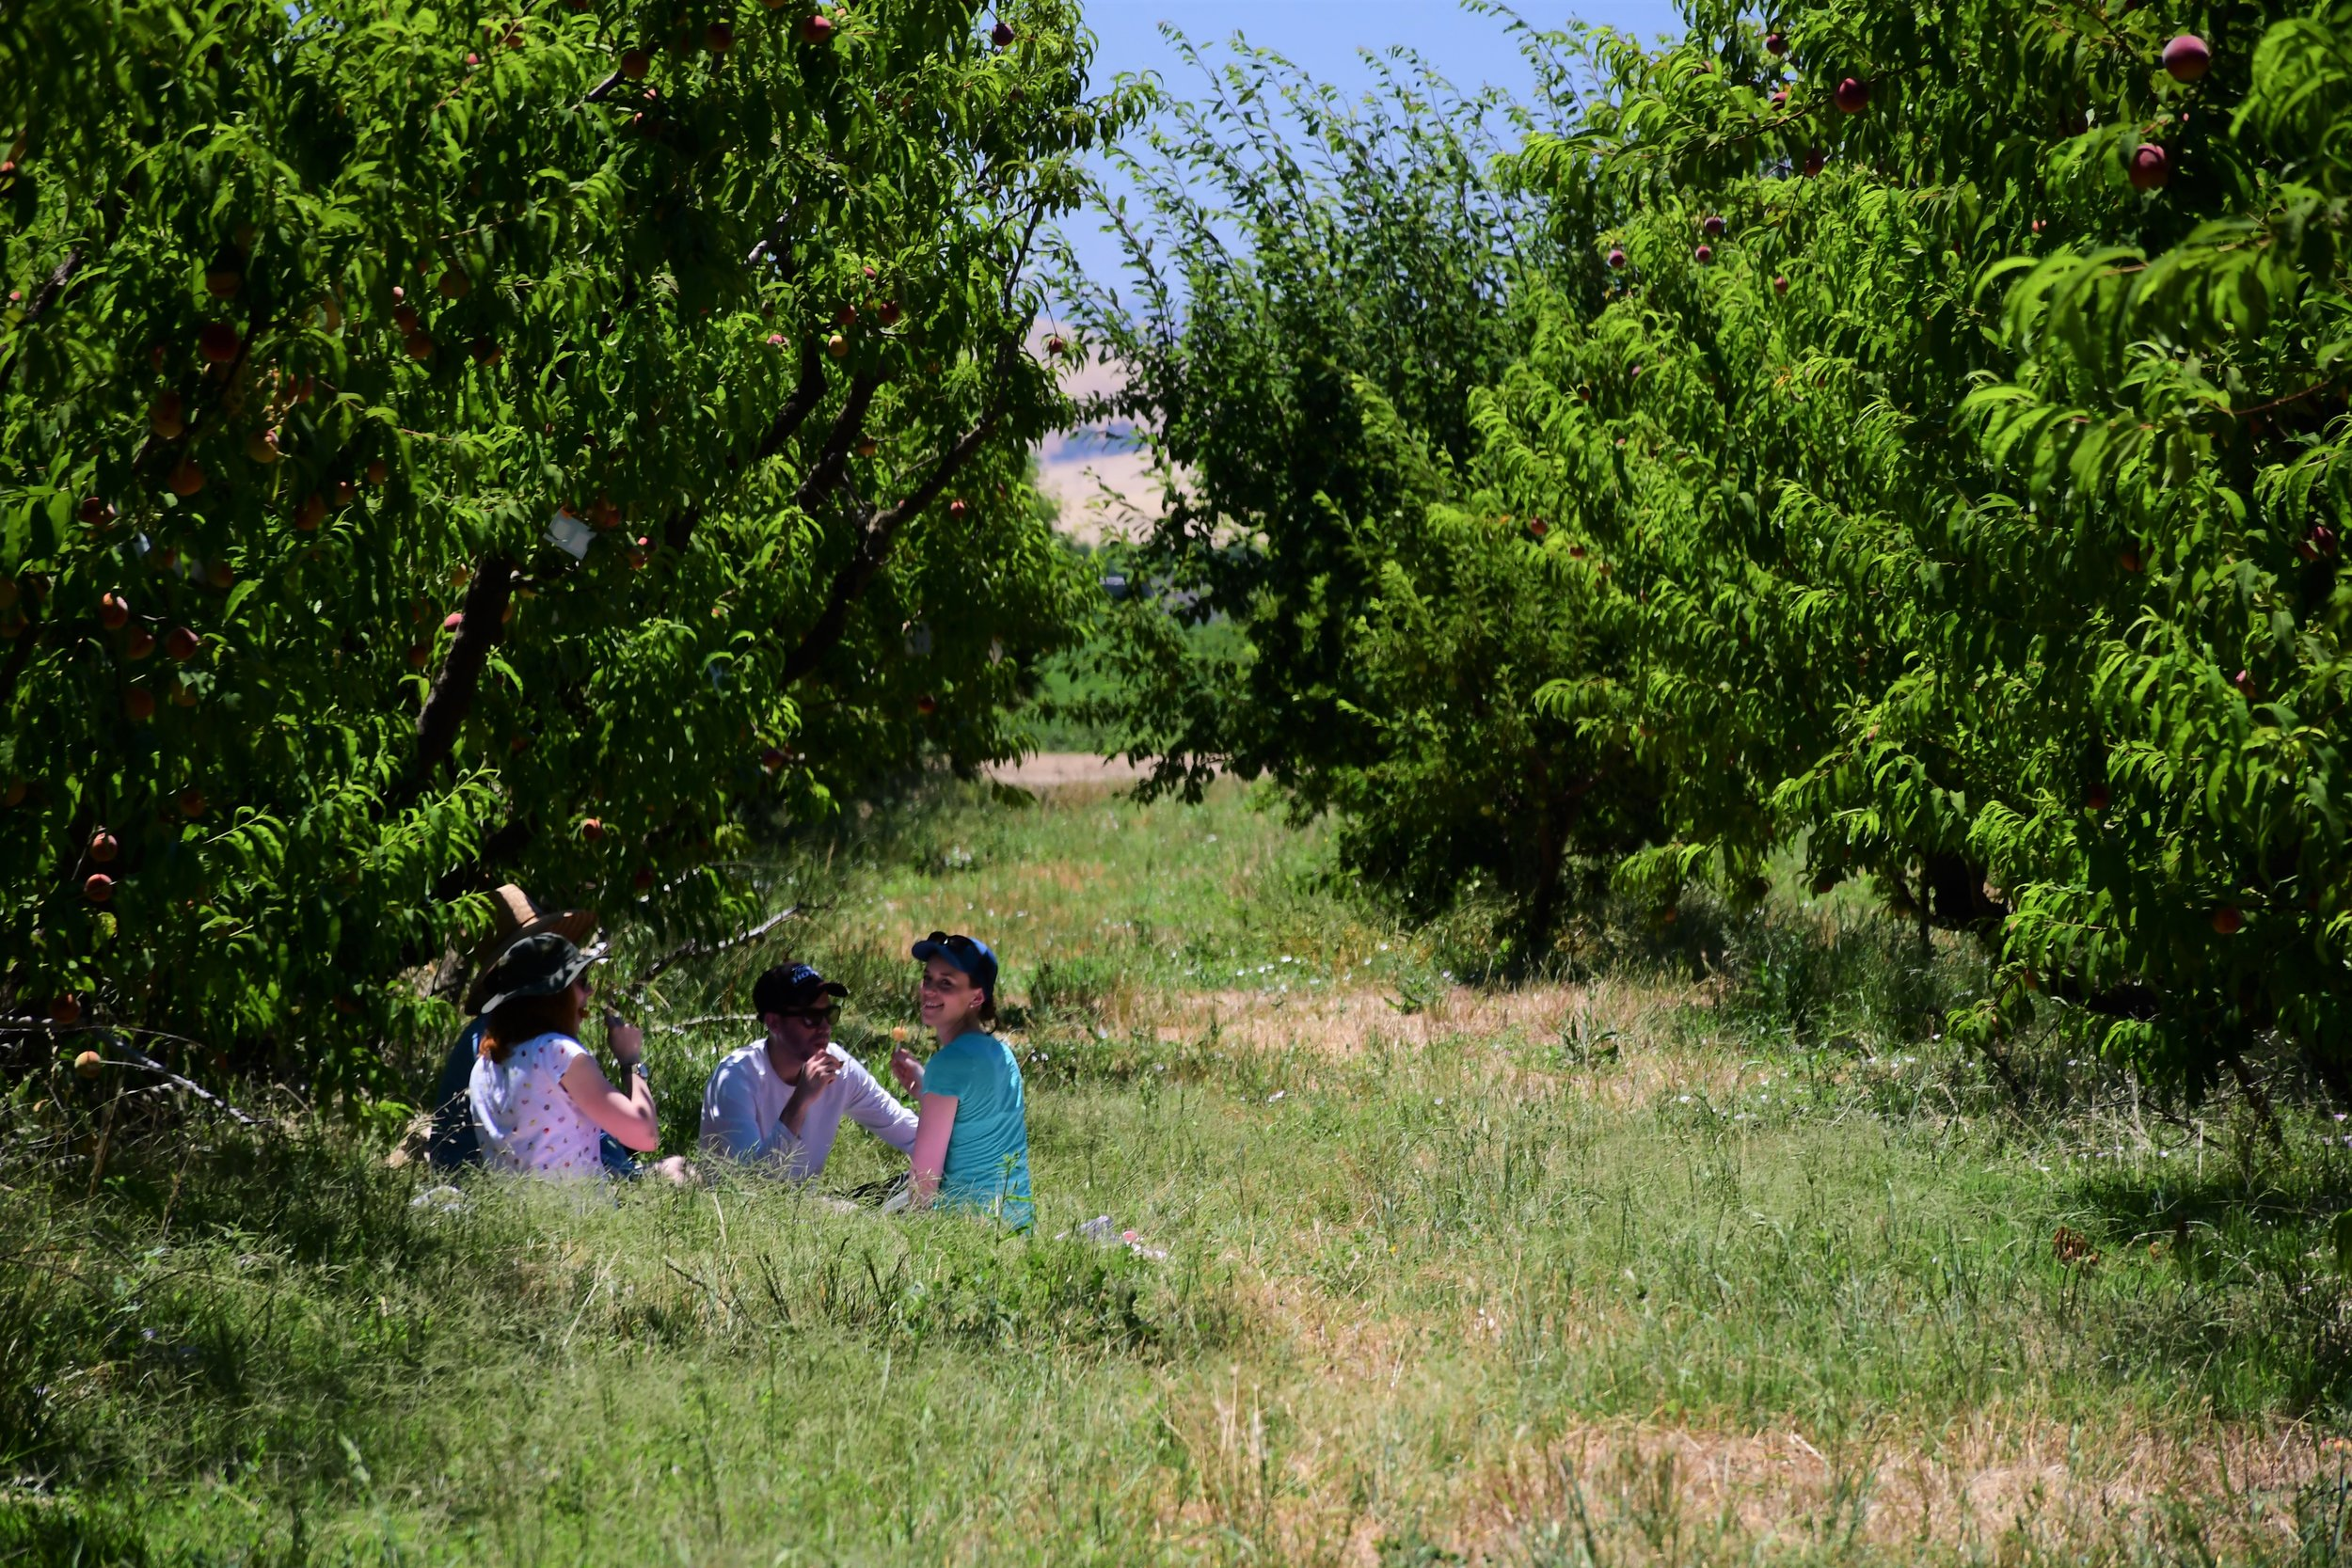 Enjoying popsicles in the orchard